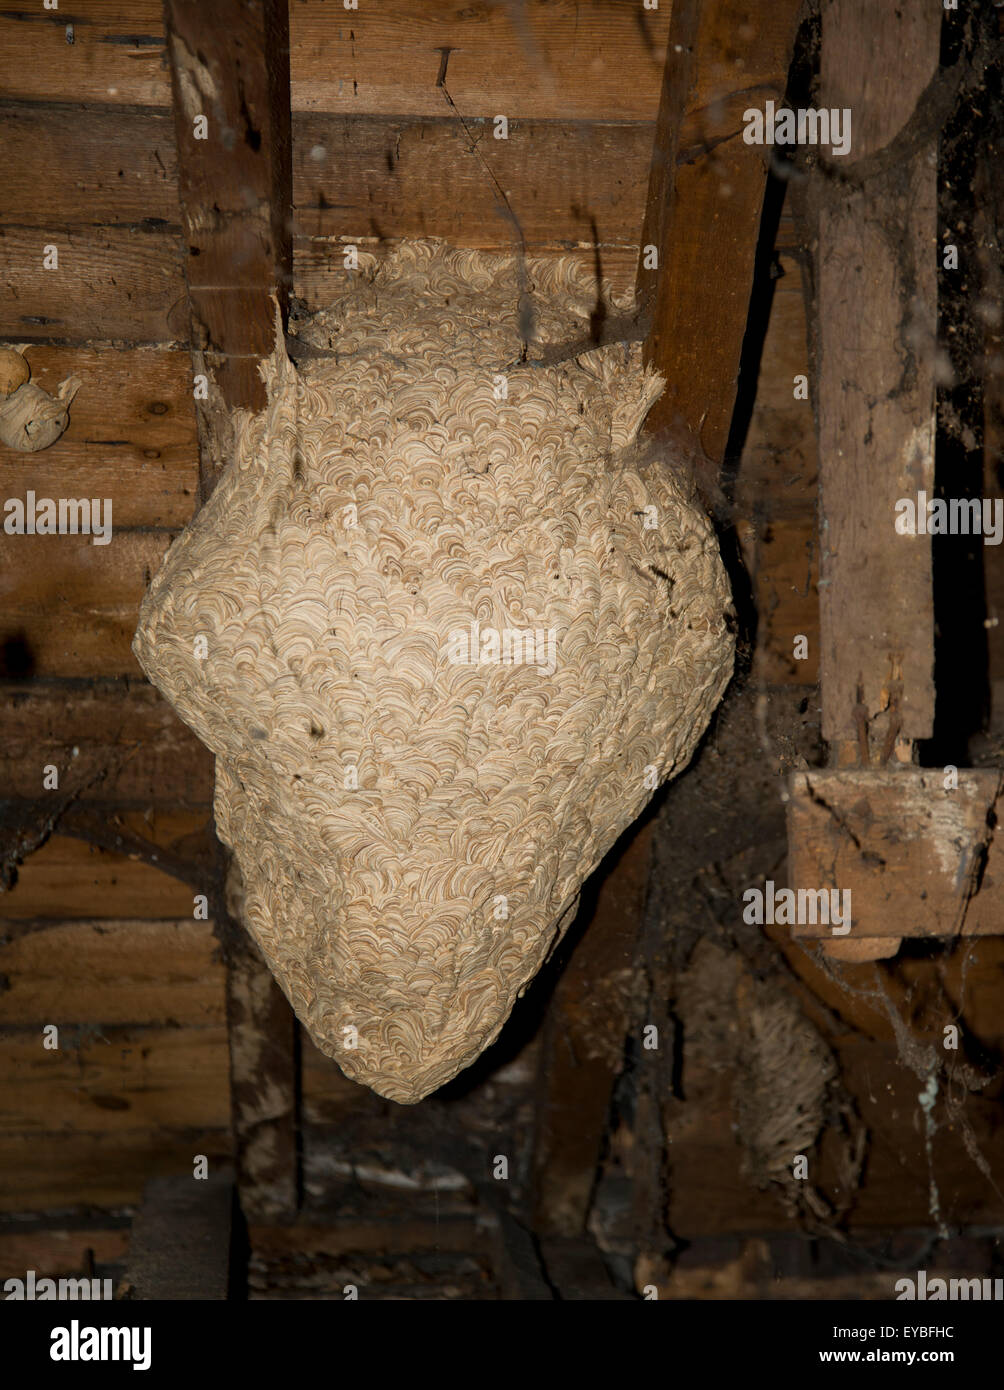 Large wasp nest in house attic. Wasp nest in between rafters of a house loft. & Large wasp nest in house attic. Wasp nest in between rafters of a ...